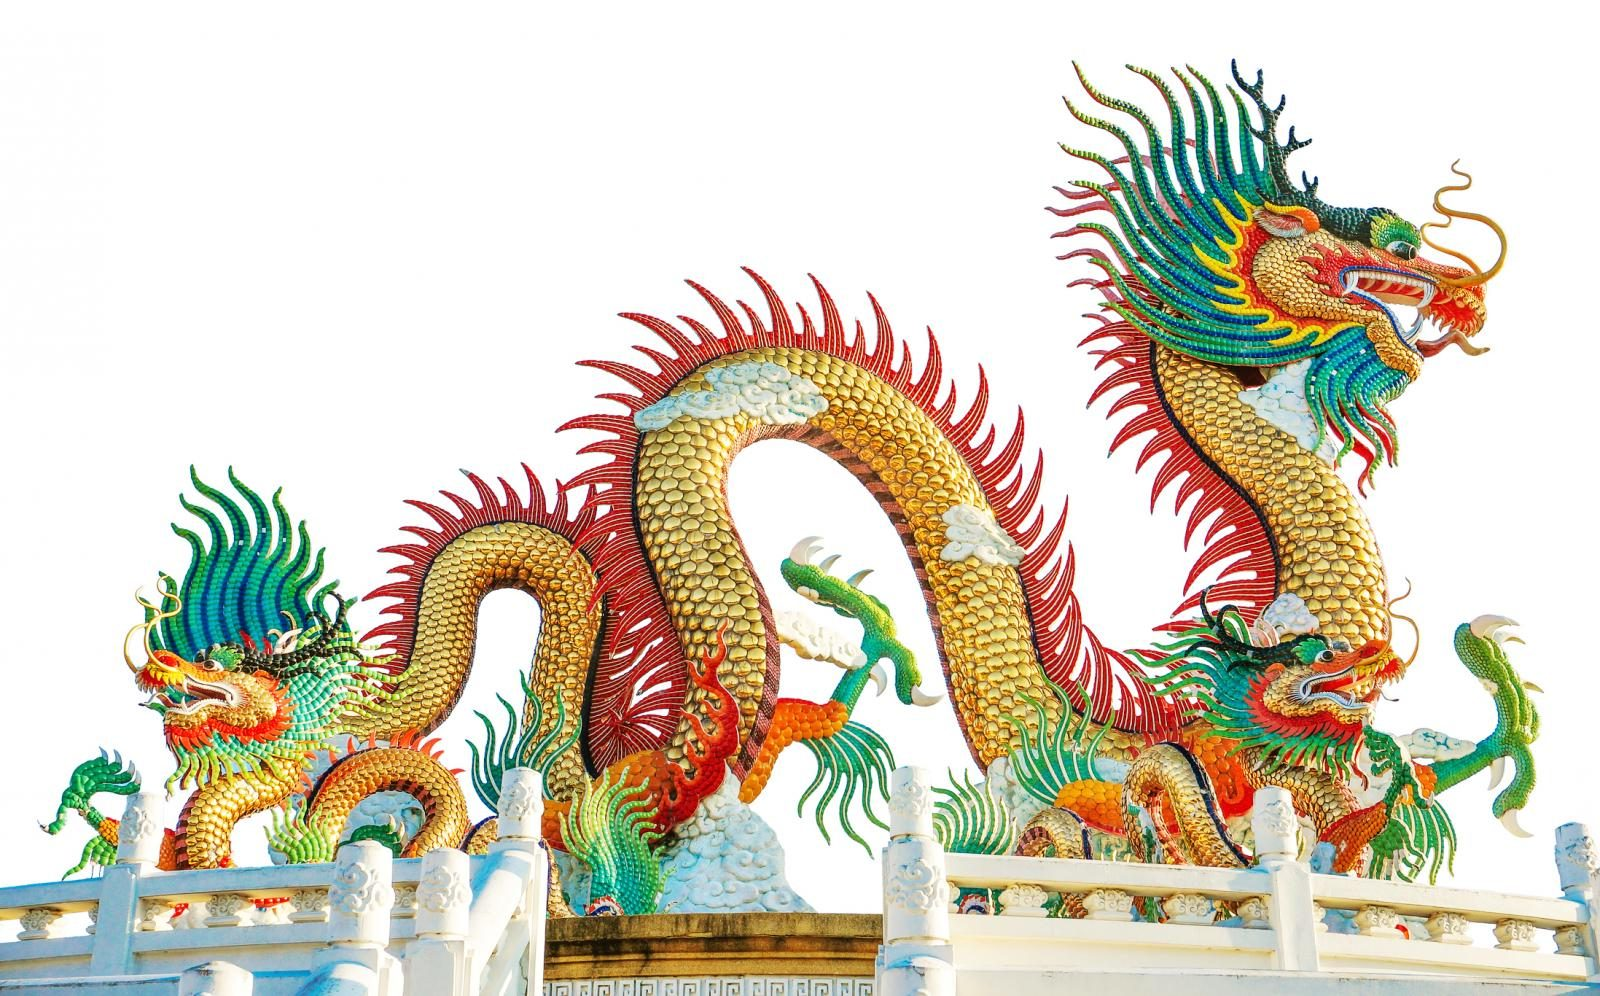 Curs Astrologie Chineza